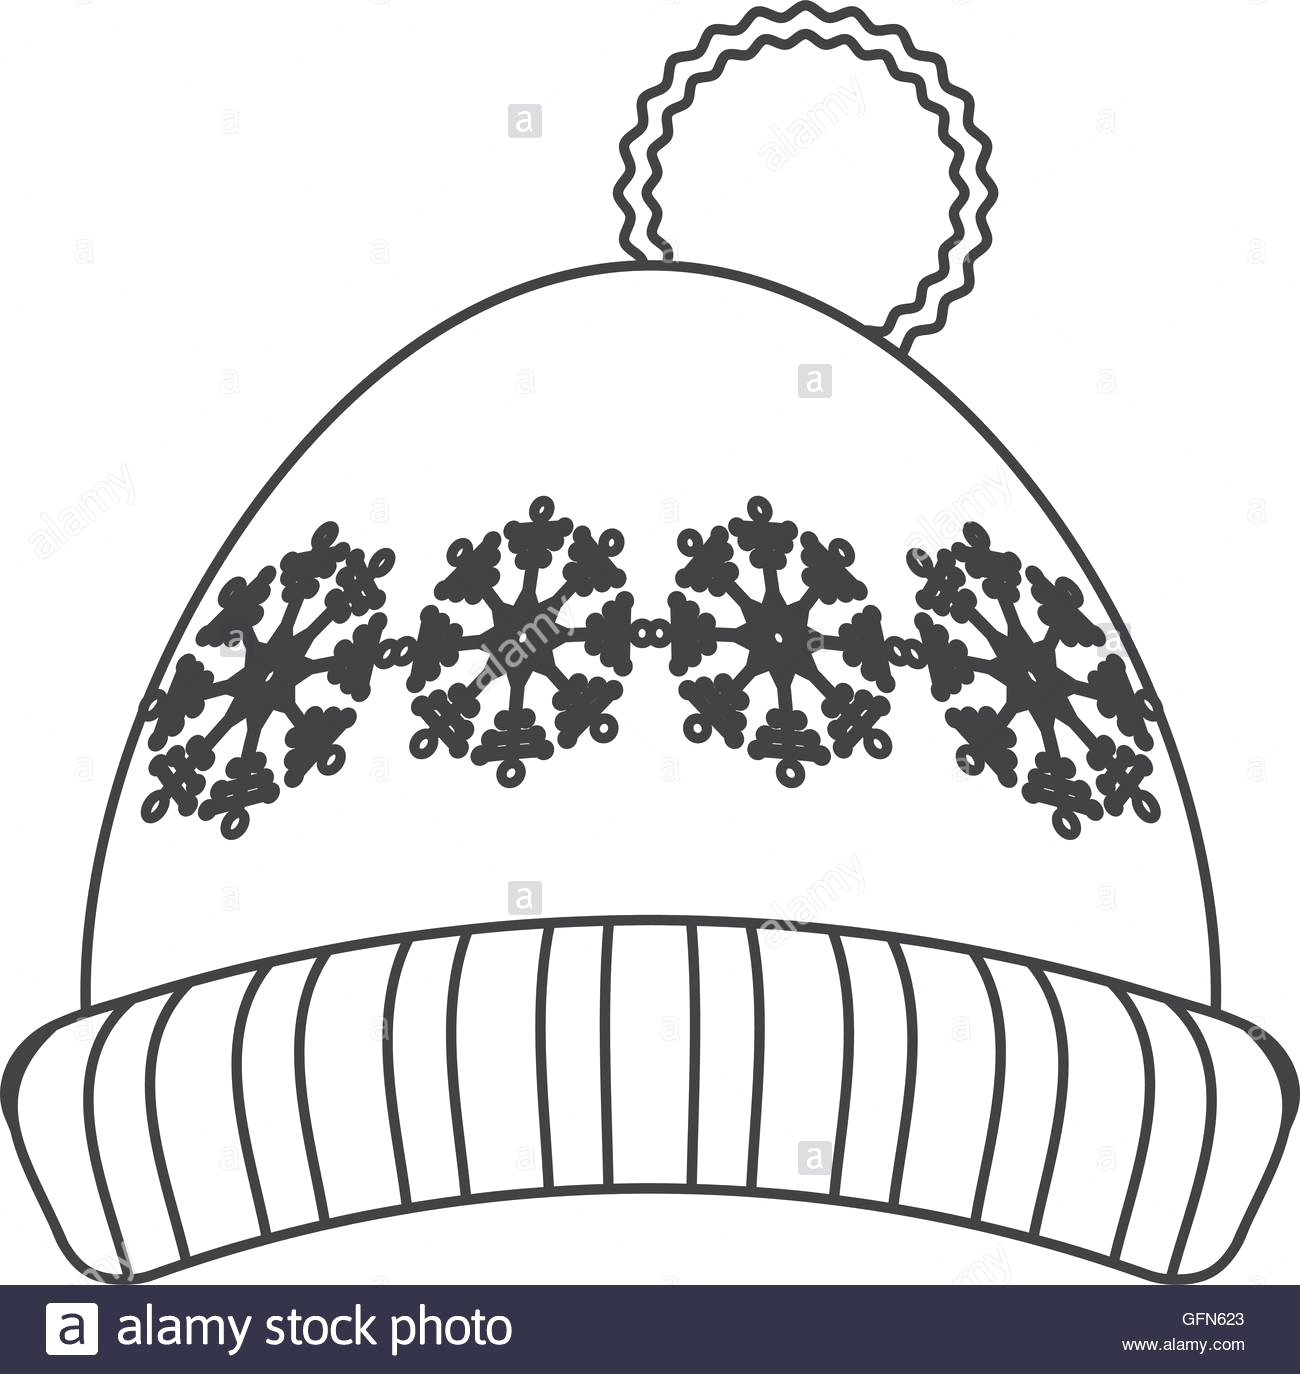 Winter Hat Clipart Black And White Baseball Onmggaf9 Clip Art 2.